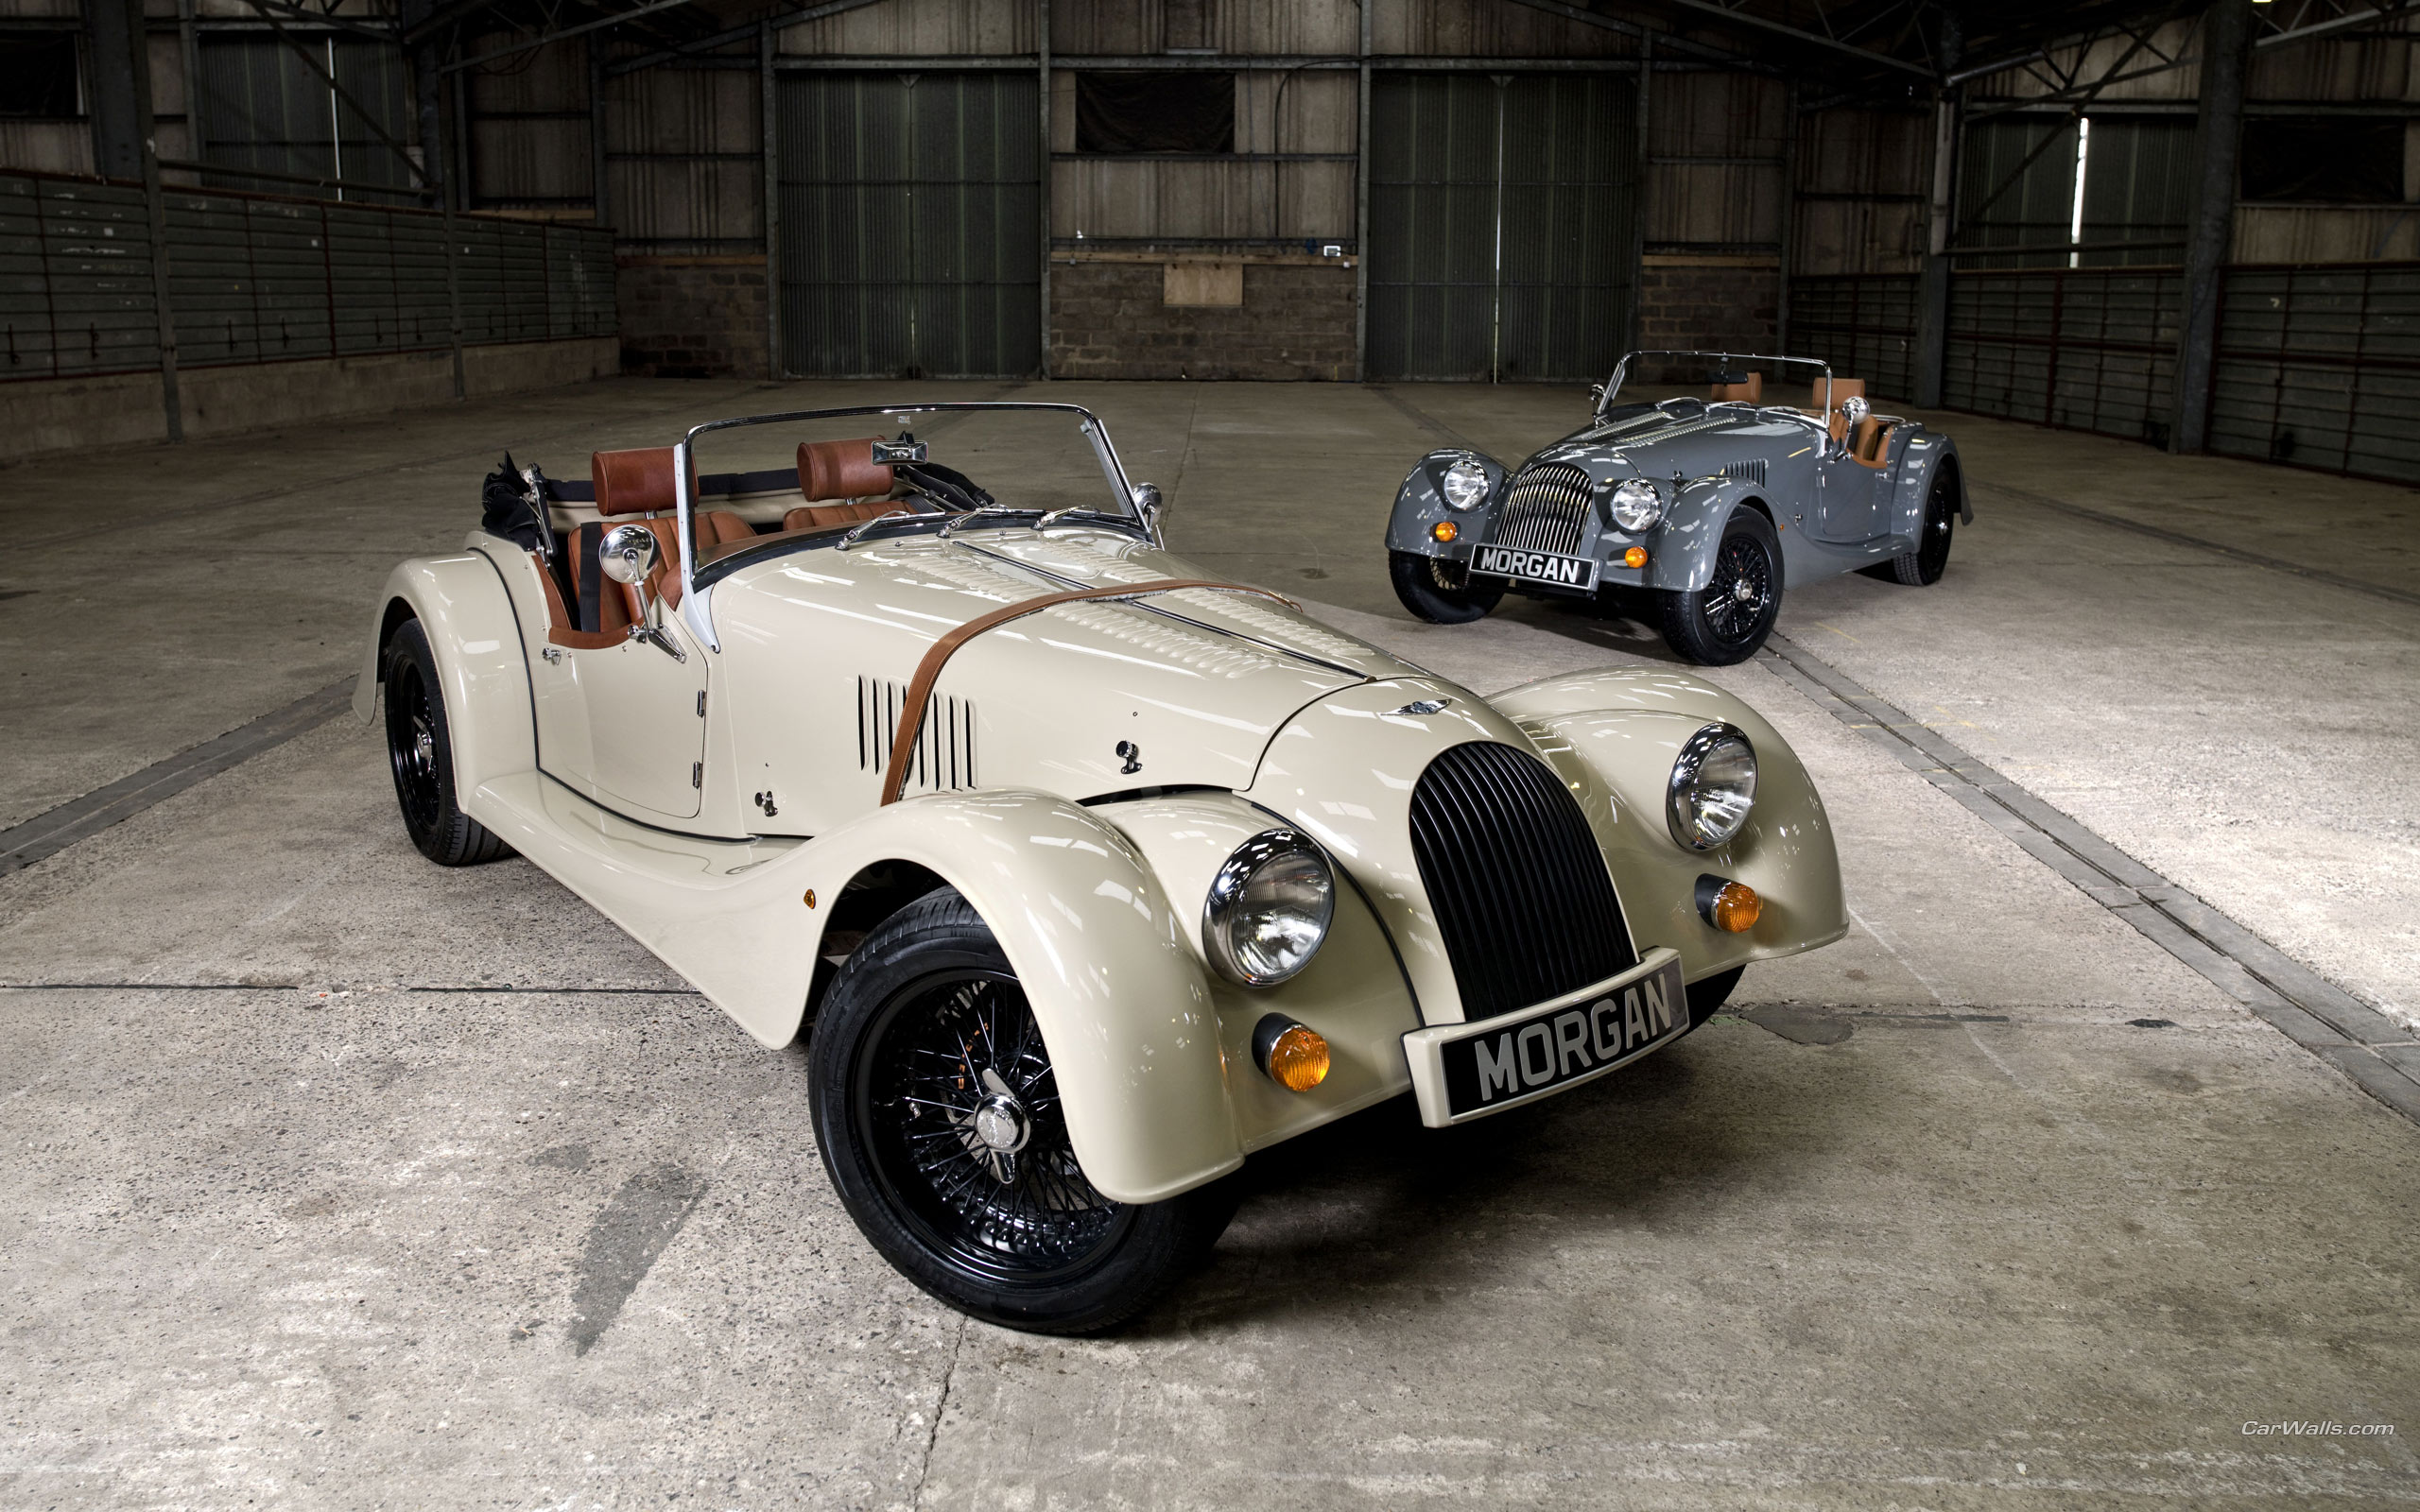 Morgan Plus 4 #4